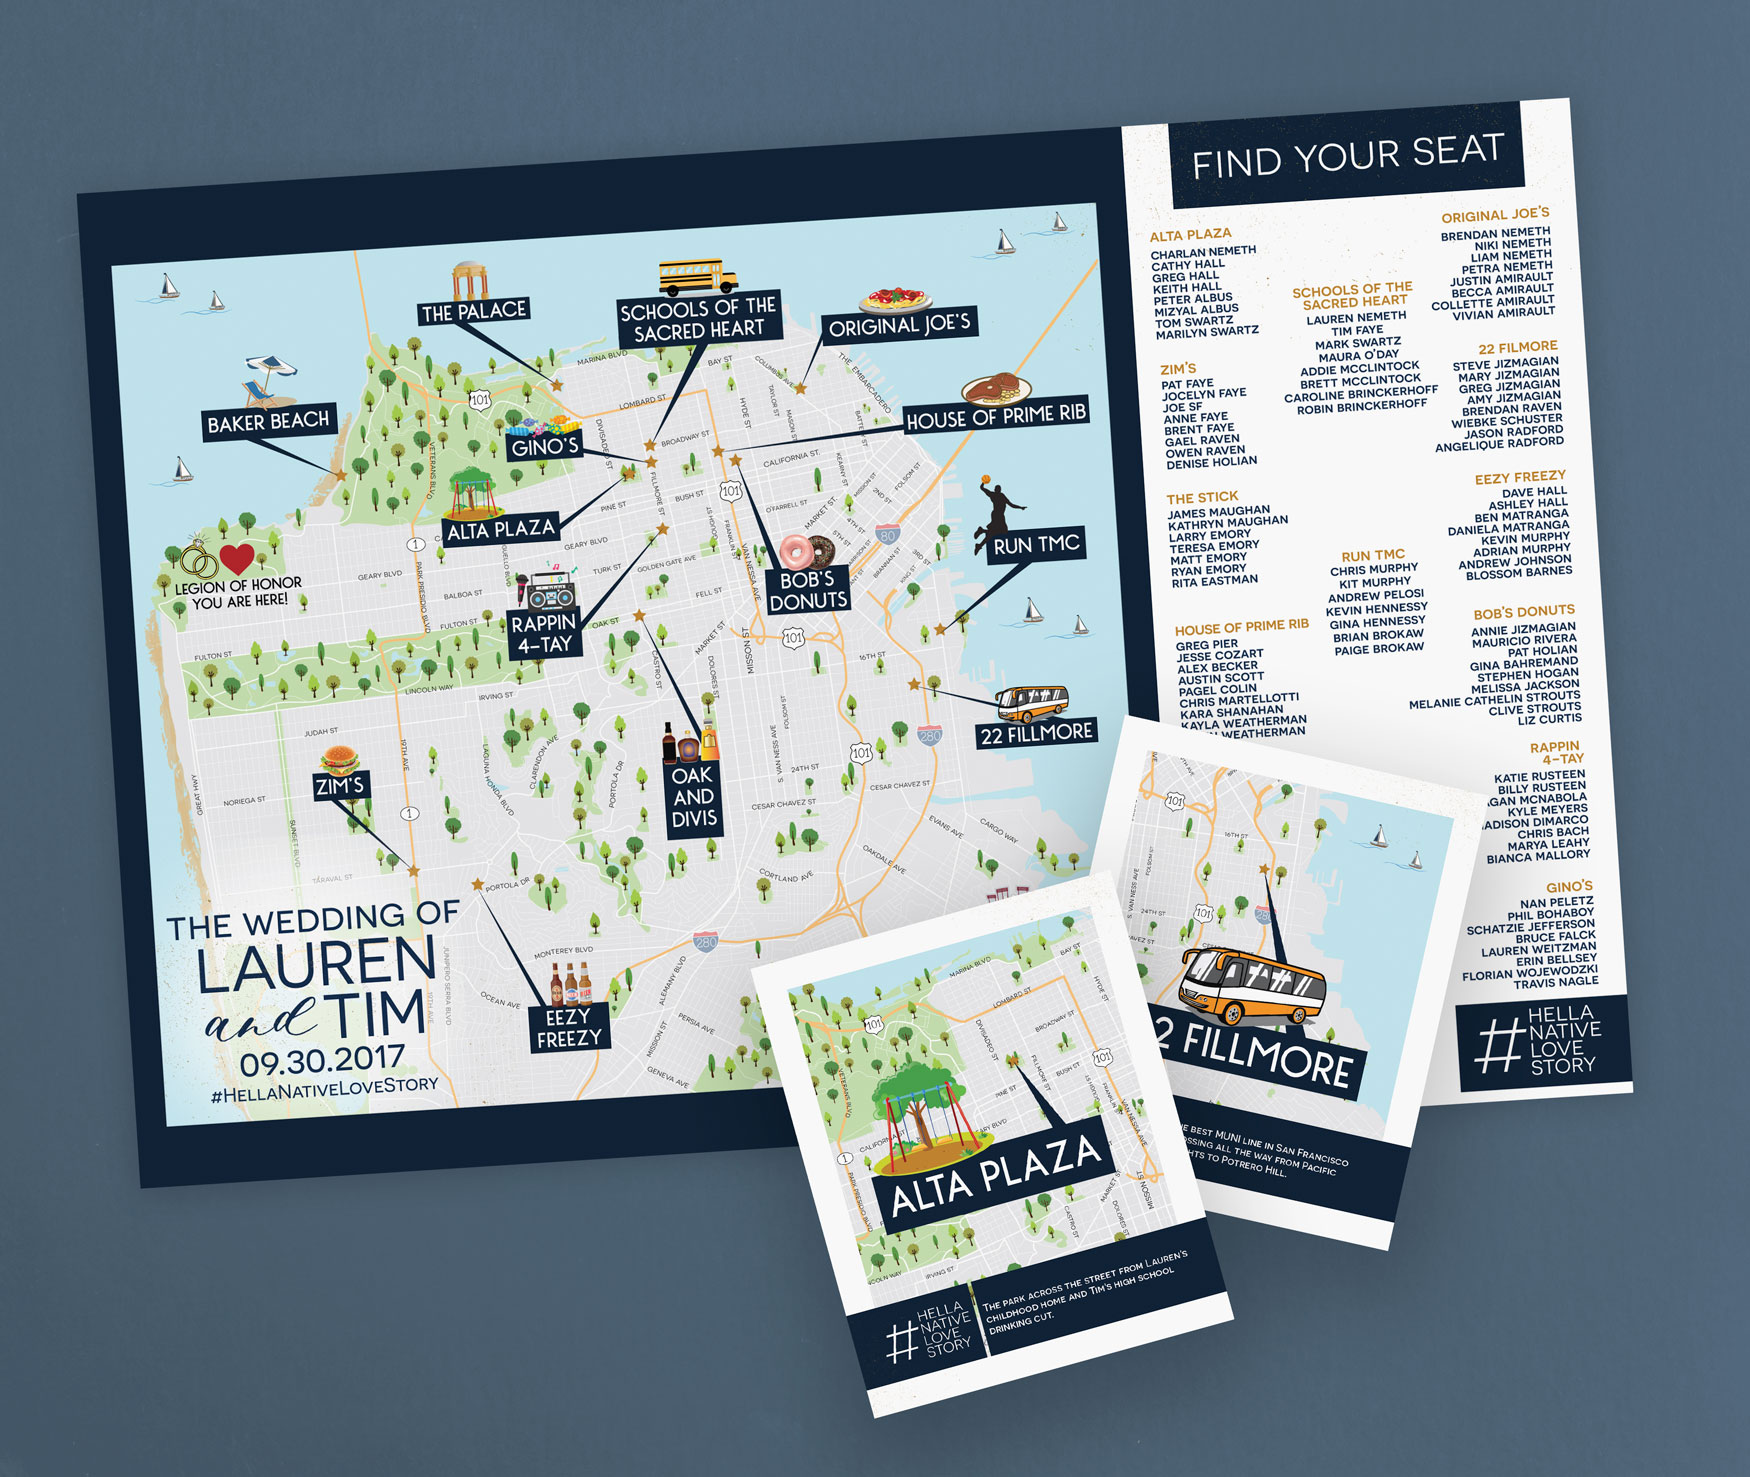 San Francisco Wedding Map used as a seating chart by Feathered Heart Prints